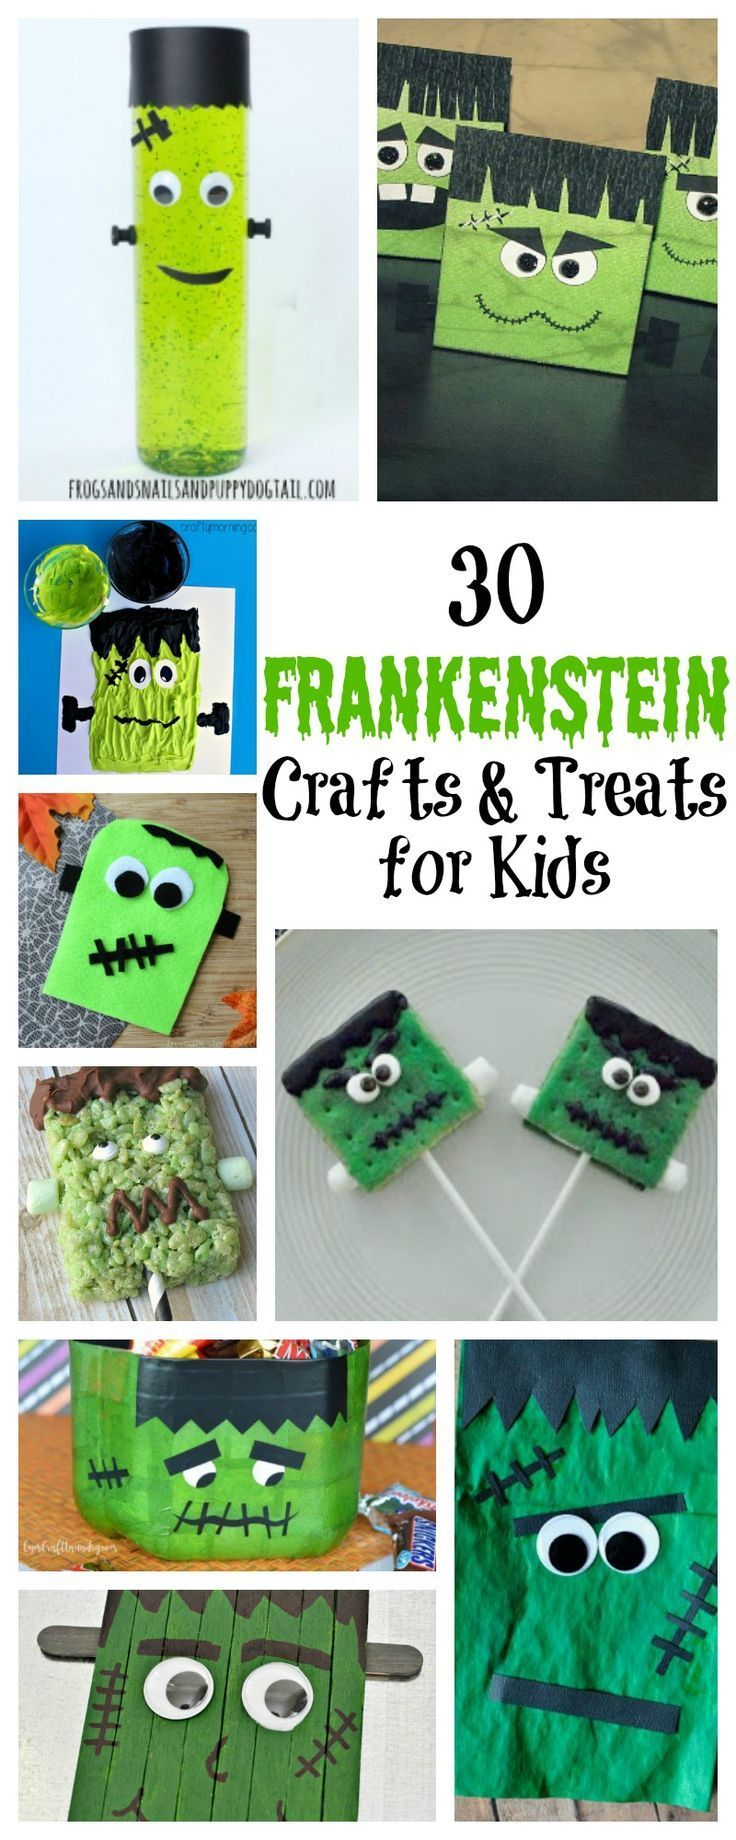 Halloween wouldn't be complete without our favorite monster, Frankenstein. I've put together a collection of Frankenstein crafts and treats for kids that will help inspire you to create your own!